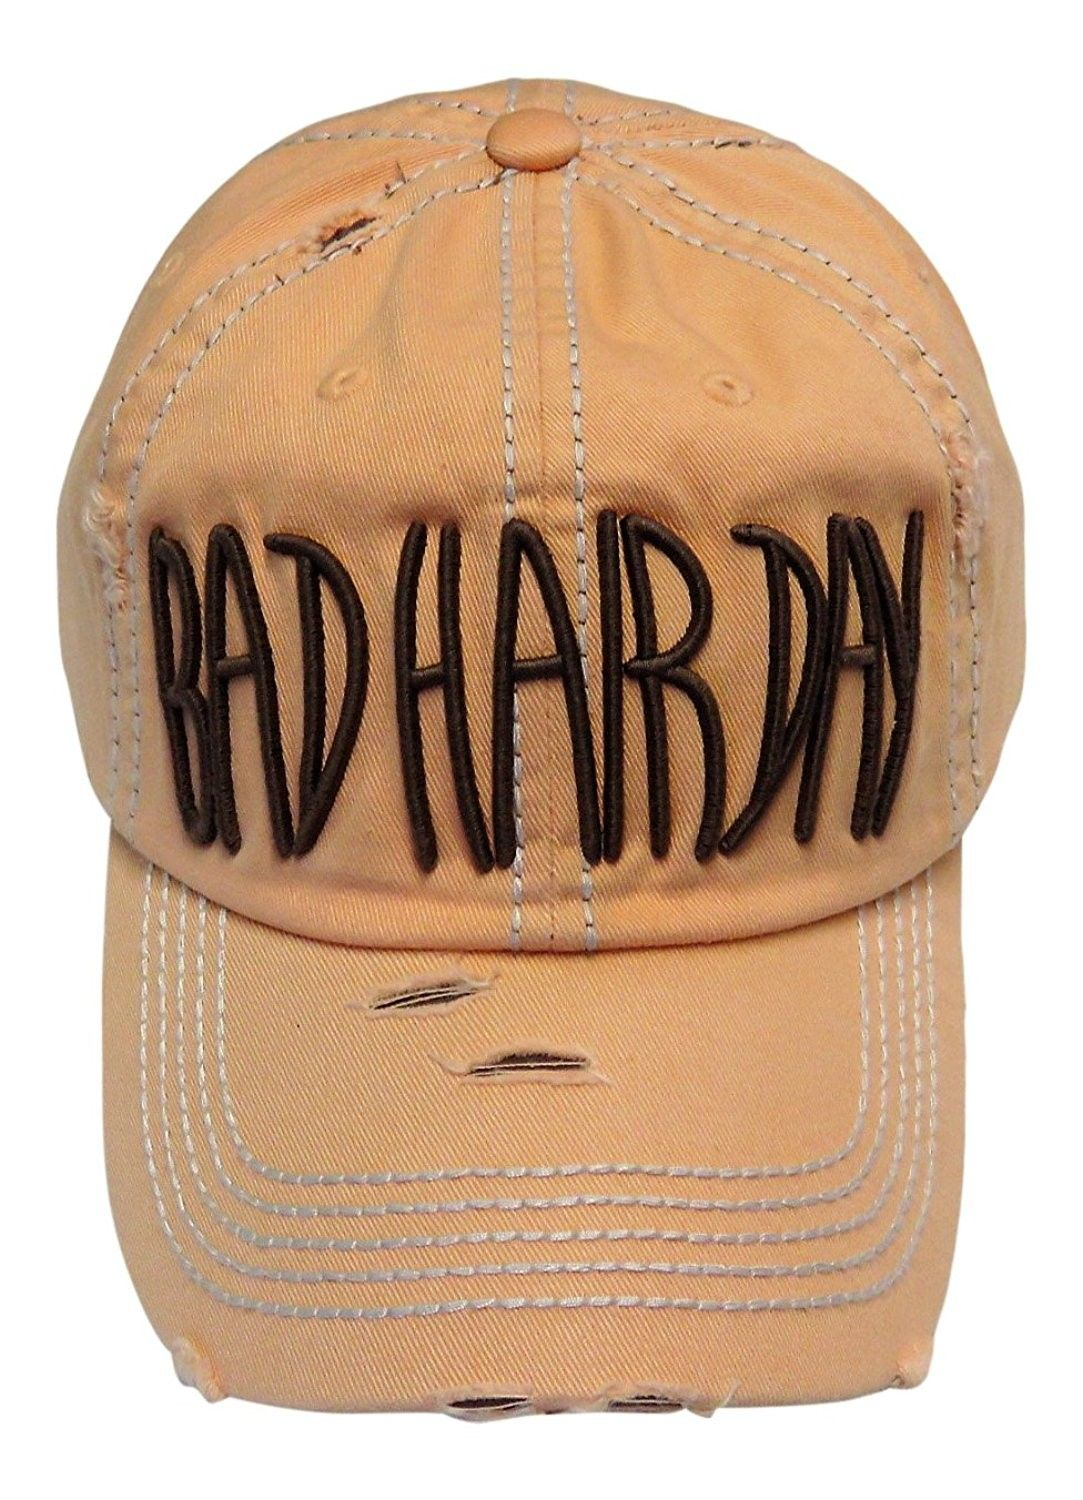 e5f522ae Embroidered Bad Hair Day Washed Vintage Baseball Cap Hat - Peach -  CH185M9Z547 - Hats & Caps, Women's Hats & Caps, Baseball Caps #hats #caps  #style ...